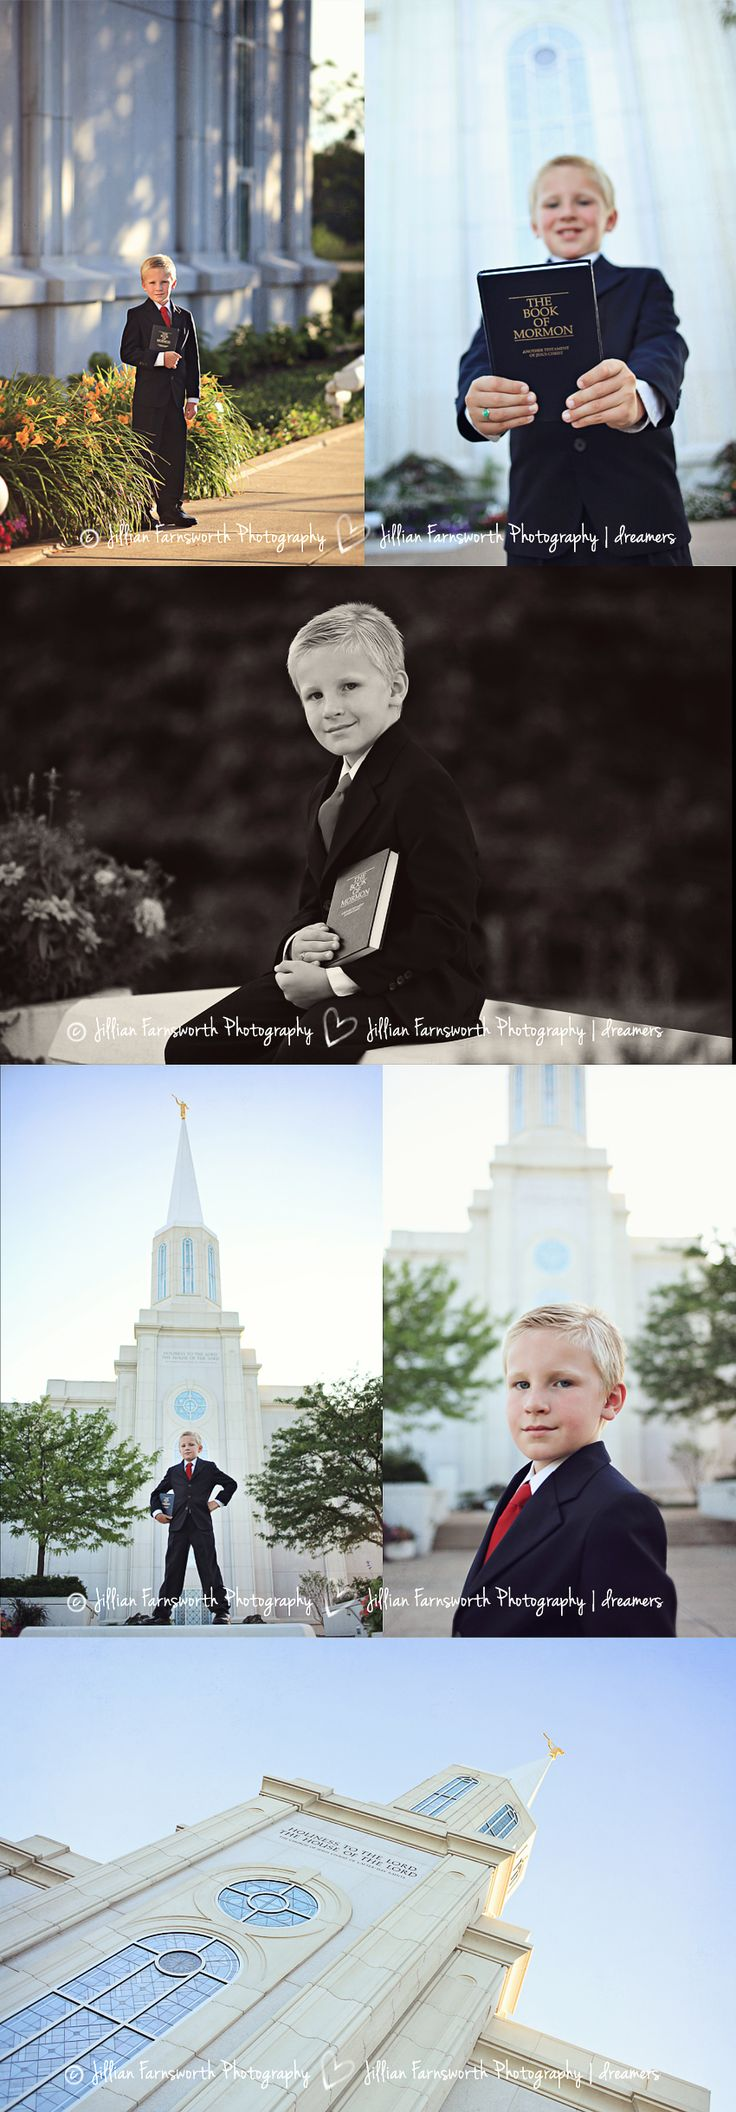 LDS 8 year old baptism portraits by Jillian Farnsworth. Taken at Saint Louis temple. #mormon #baptism #eight